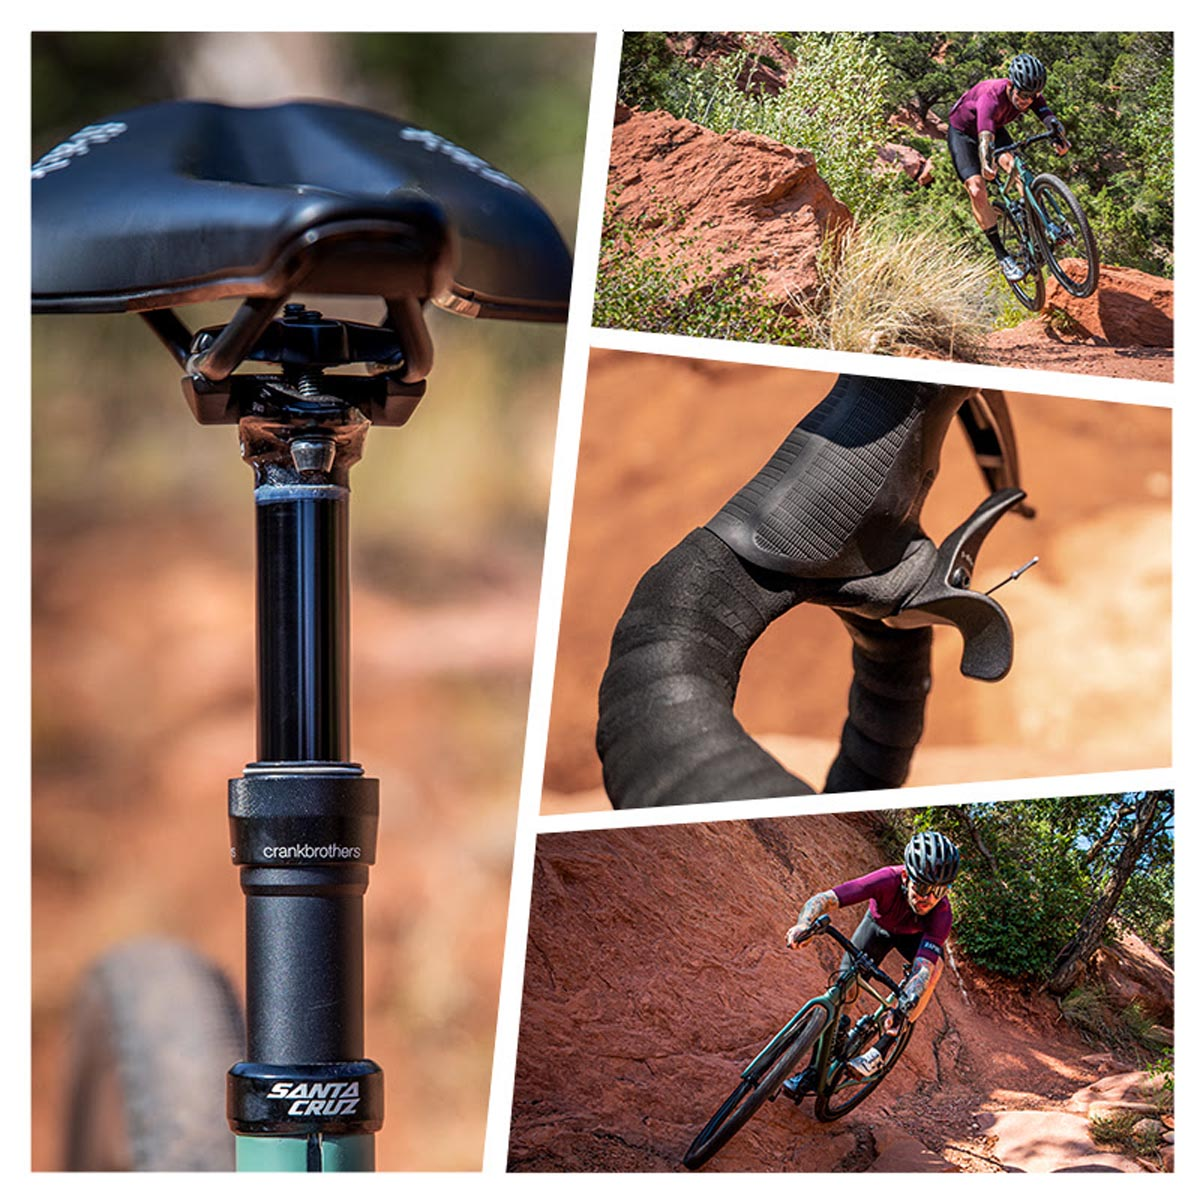 Crankbrothers Highline XC / Gravel dropper post two way remote collage